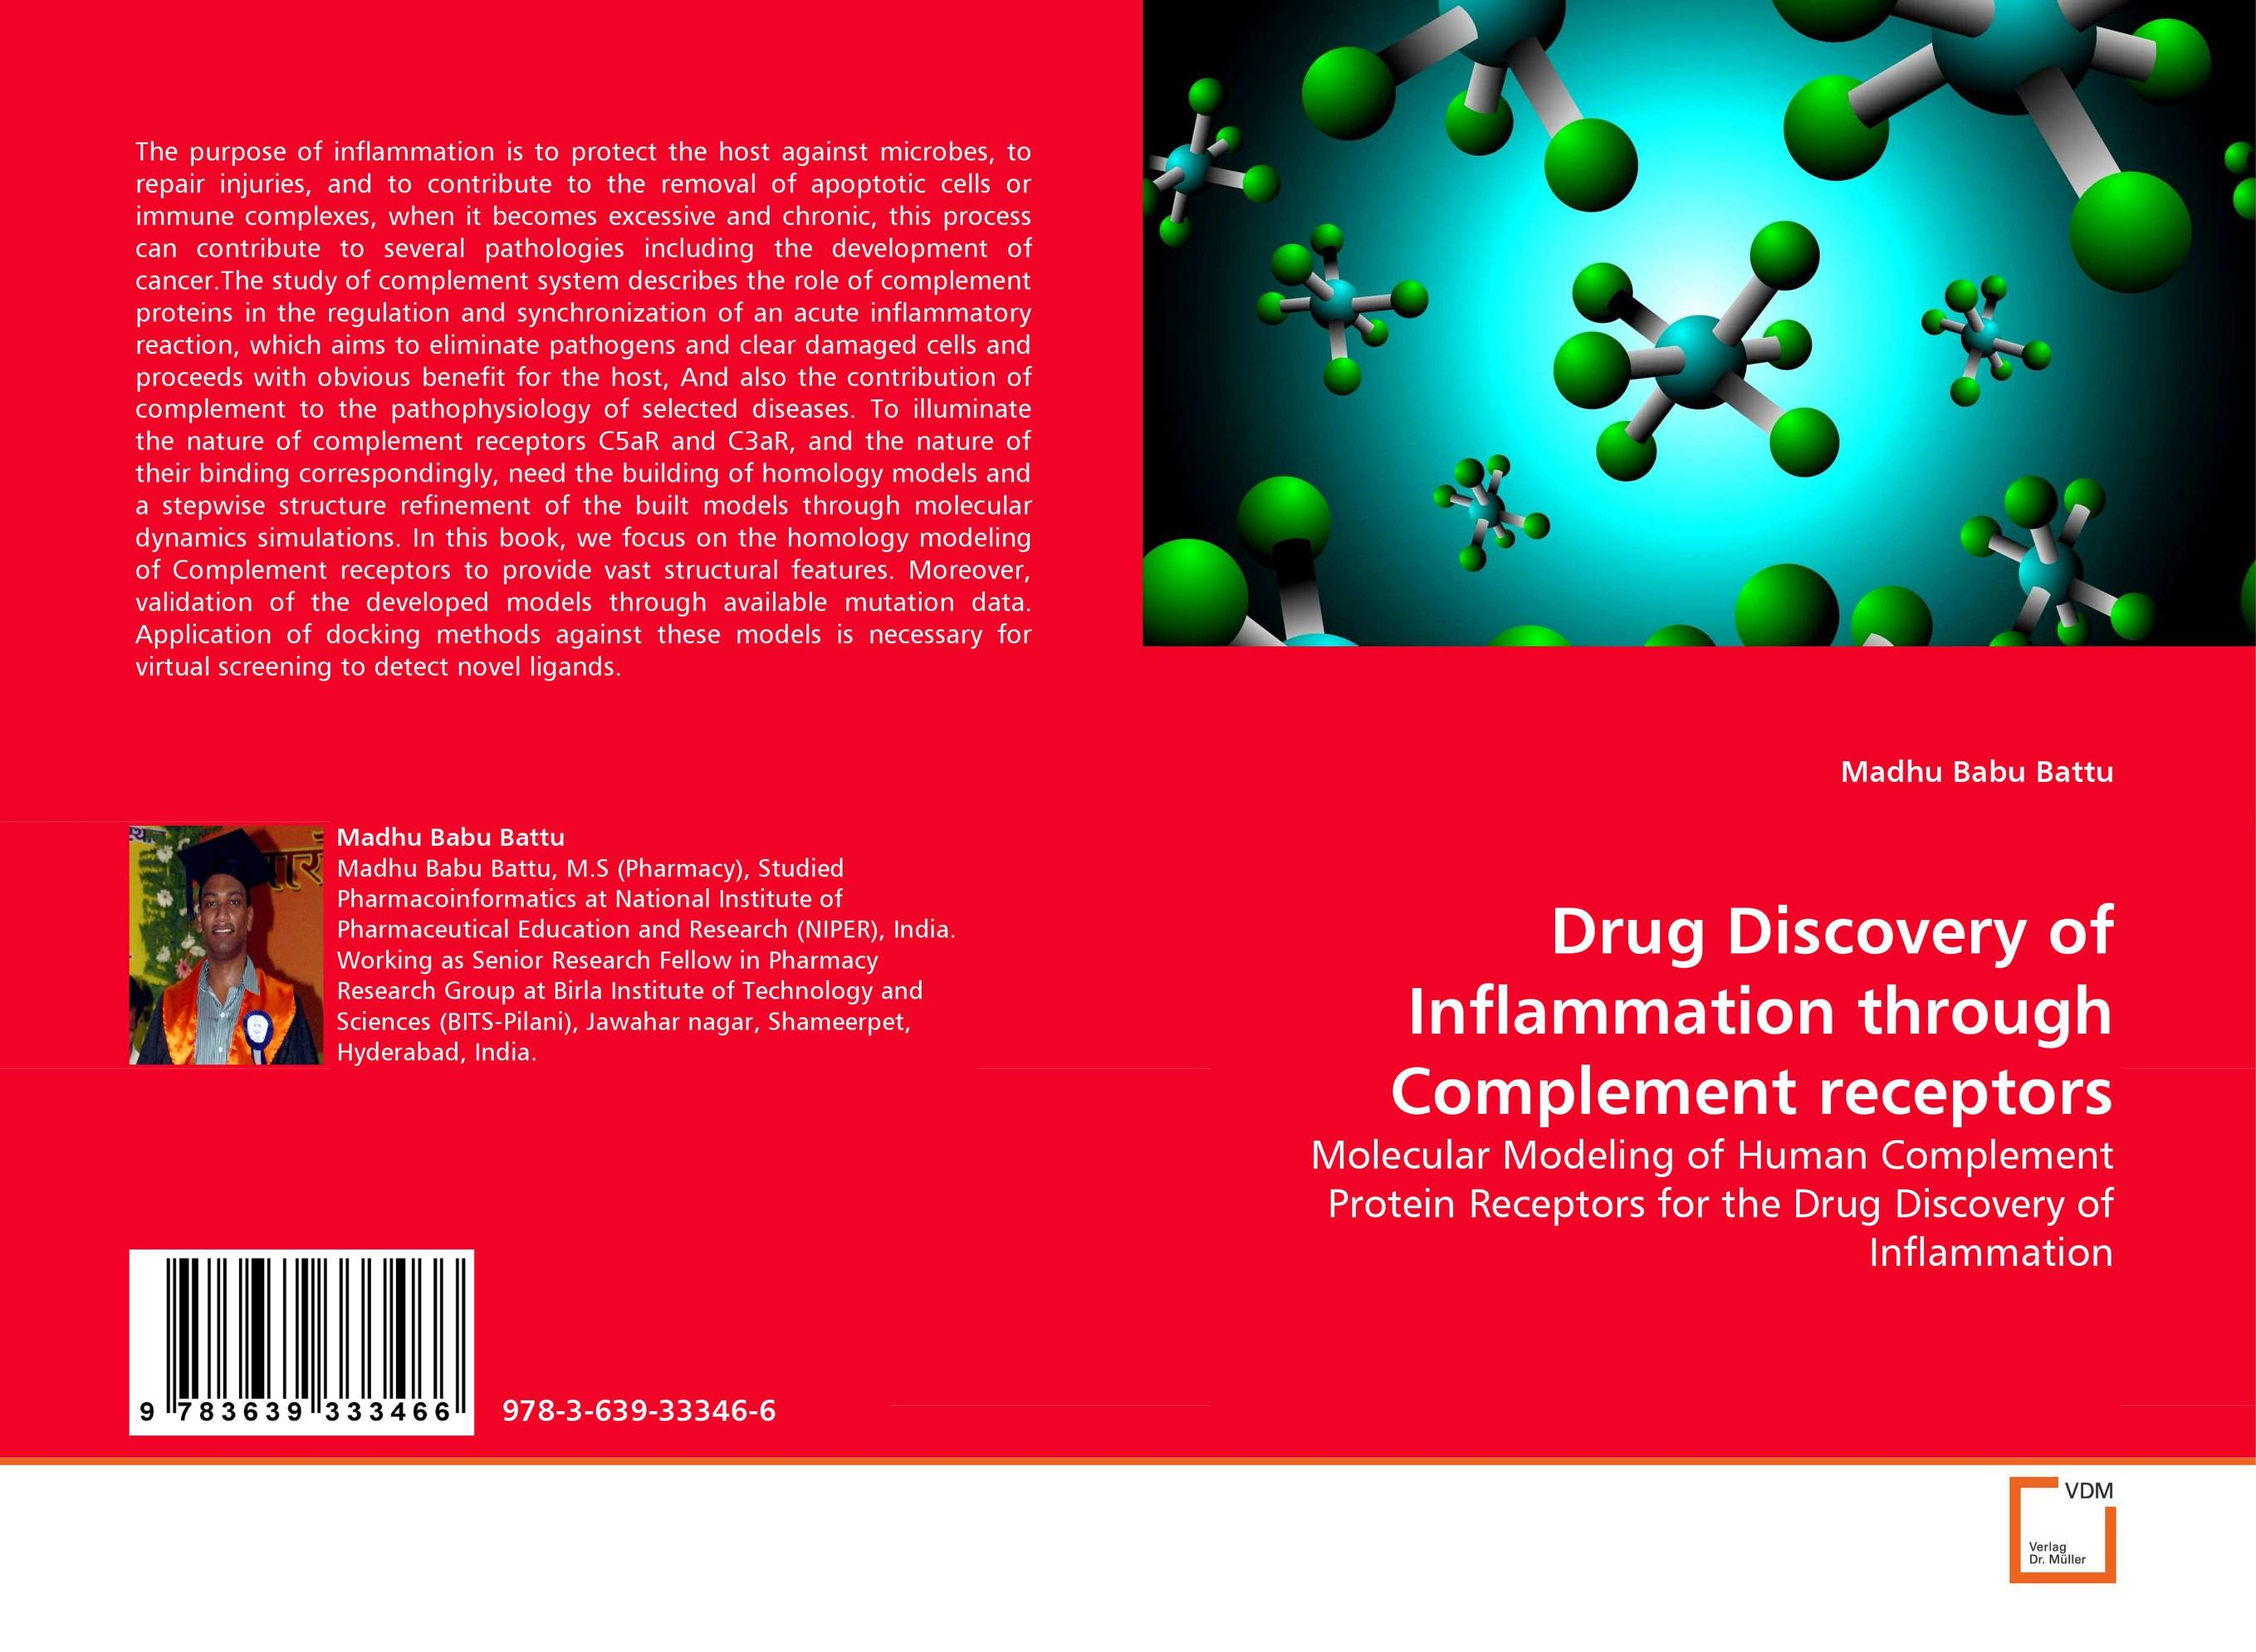 Drug Discovery of Inflammation through Complement receptors drug discovery and design